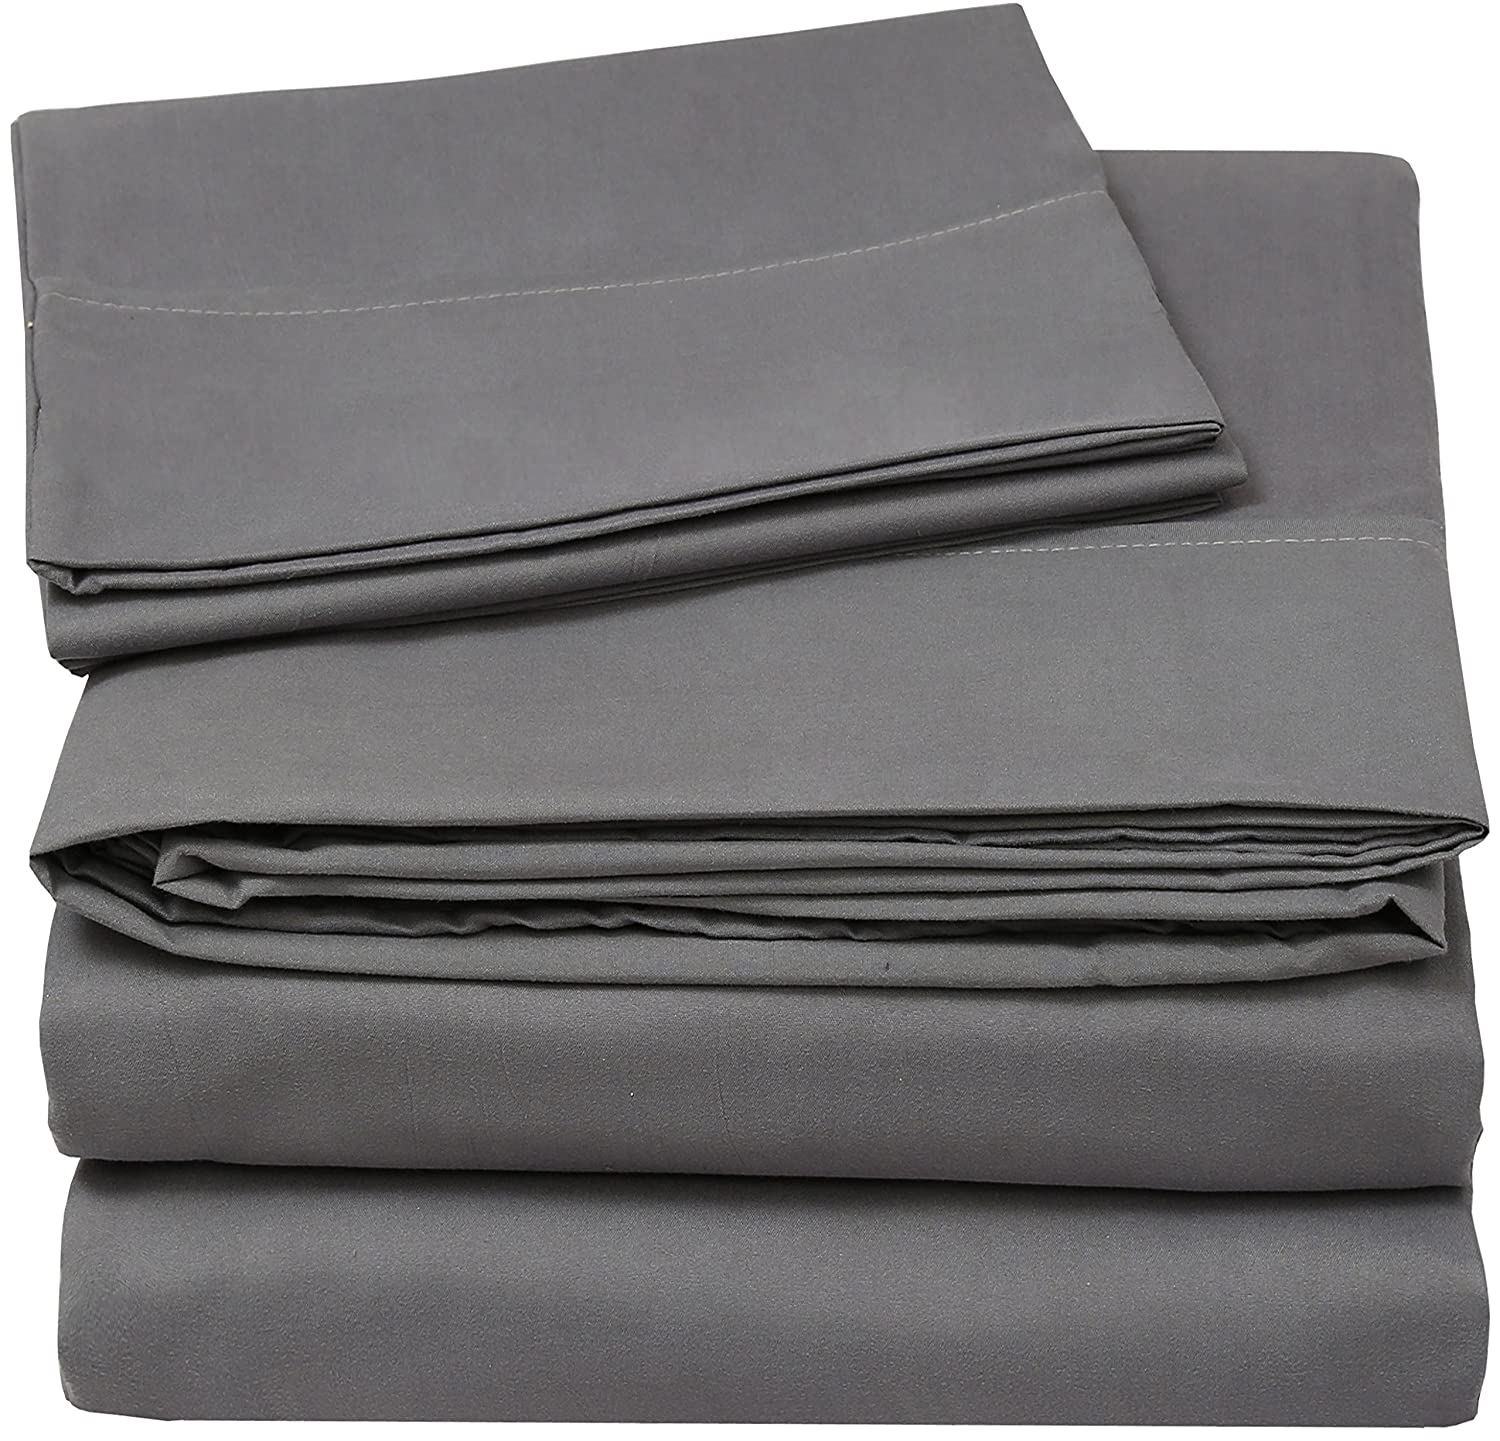 Utopia Bedding Soft Brushed Microfiber Wrinkle Fade And Stain Resistant  3 Piece Sheet Set